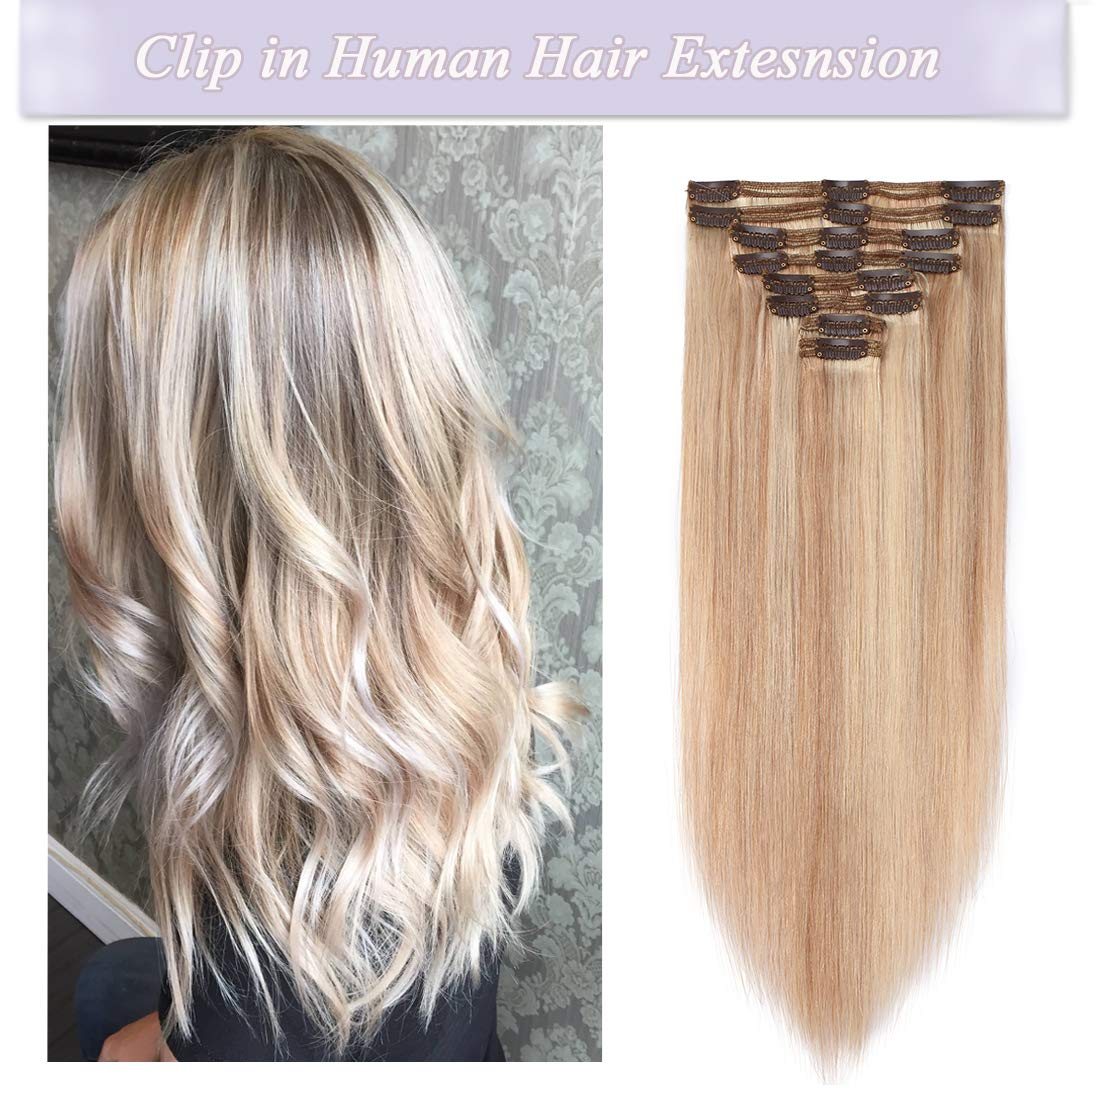 s-noilite Clip in Human Hair Extensions 100% Real Remy Thick True Double Weft Full Head 8 Pieces 18 clips Straight silky (18 inch - 140g,Ash Blonde/Bleach Blonde (#18/613)) by S-noilite